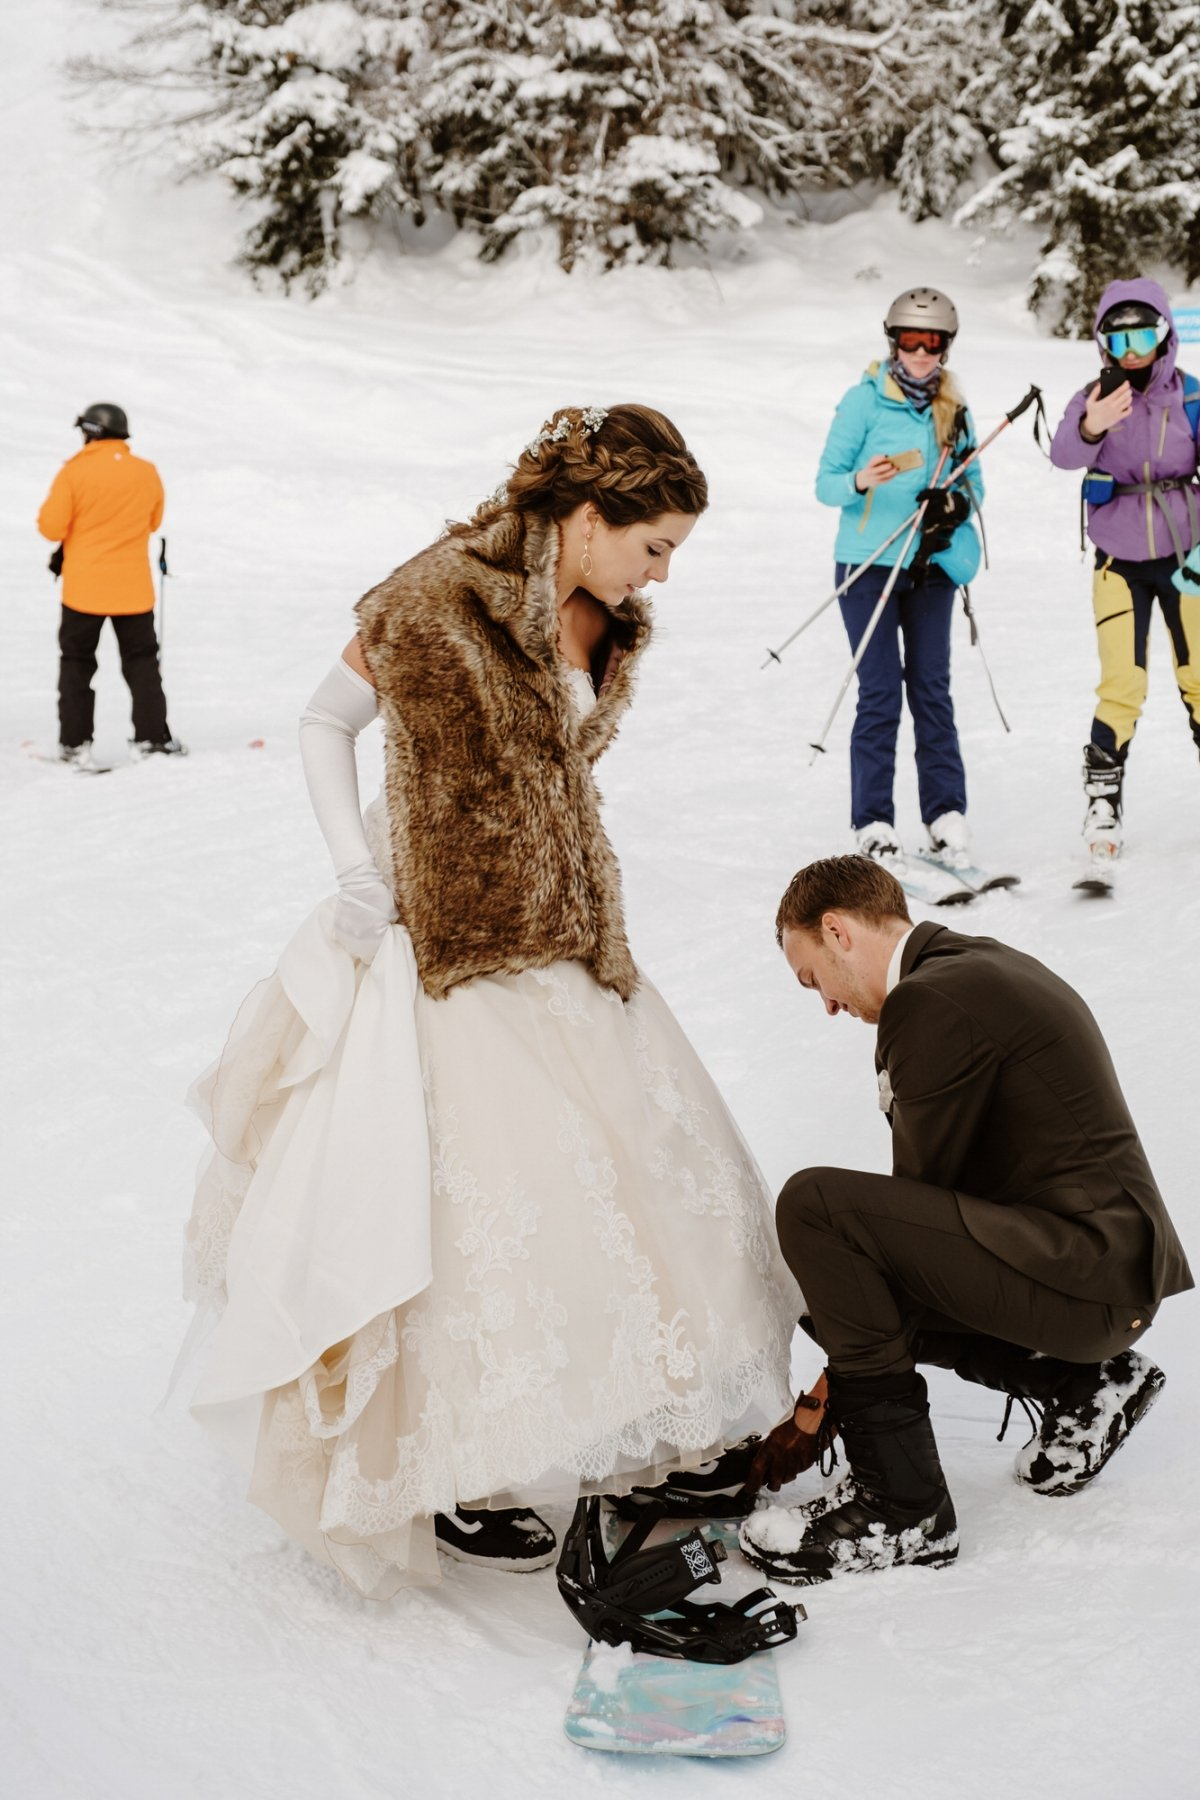 a happy couple standing on their snowboards for having fun and some cool wedding portraits